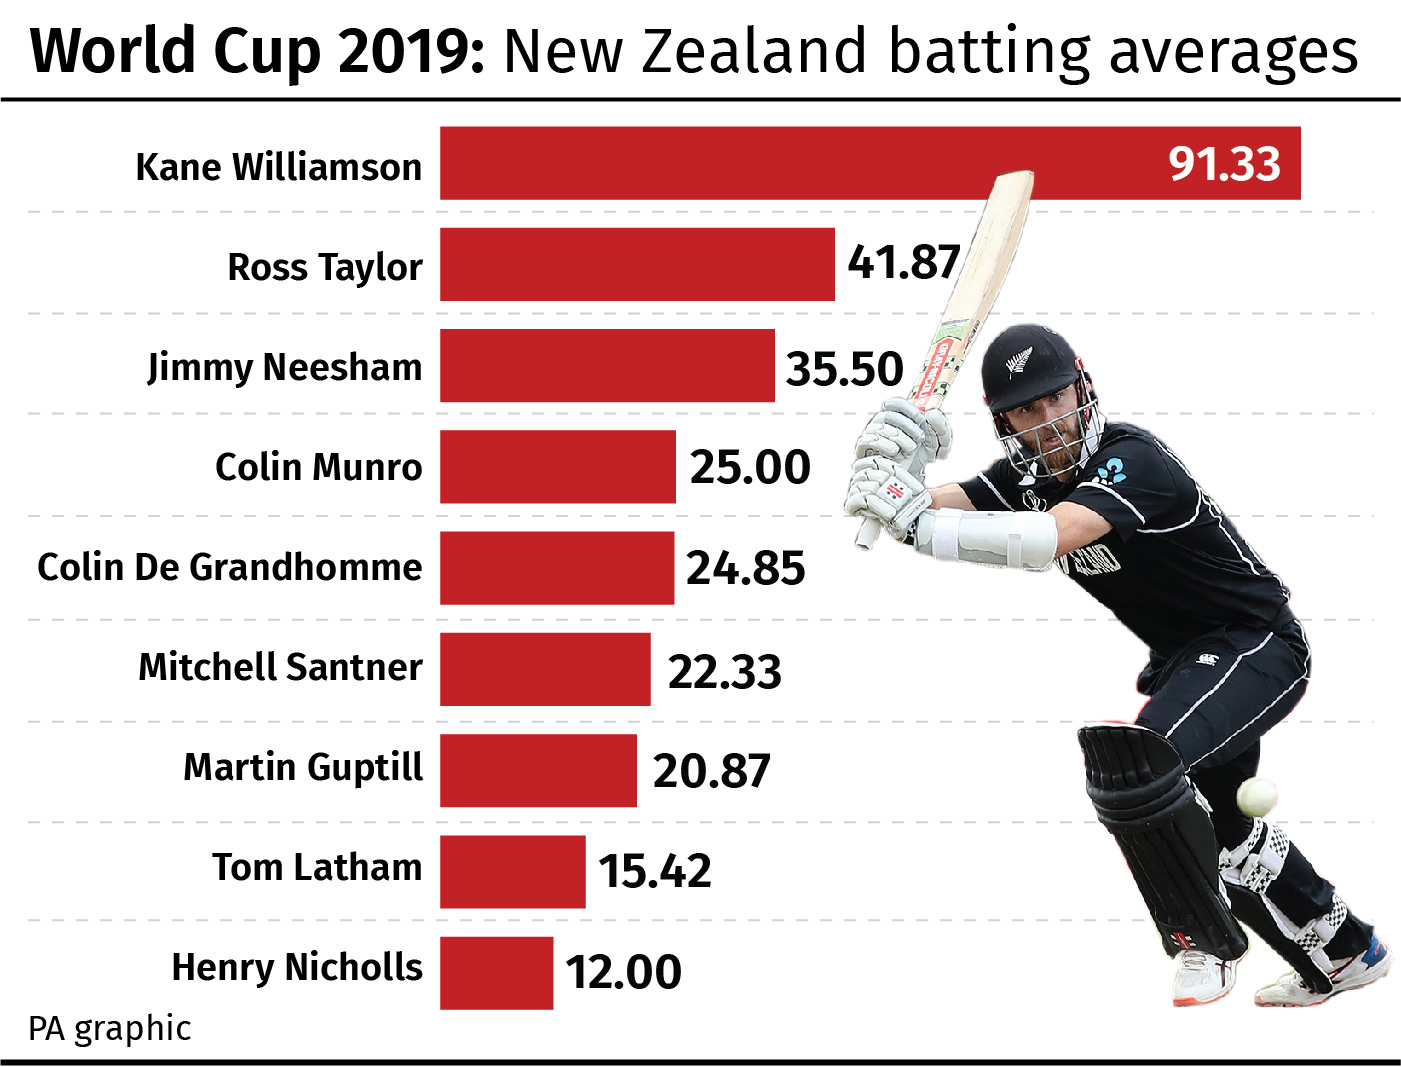 New Zealand batting averages at Cricket World Cup 2019